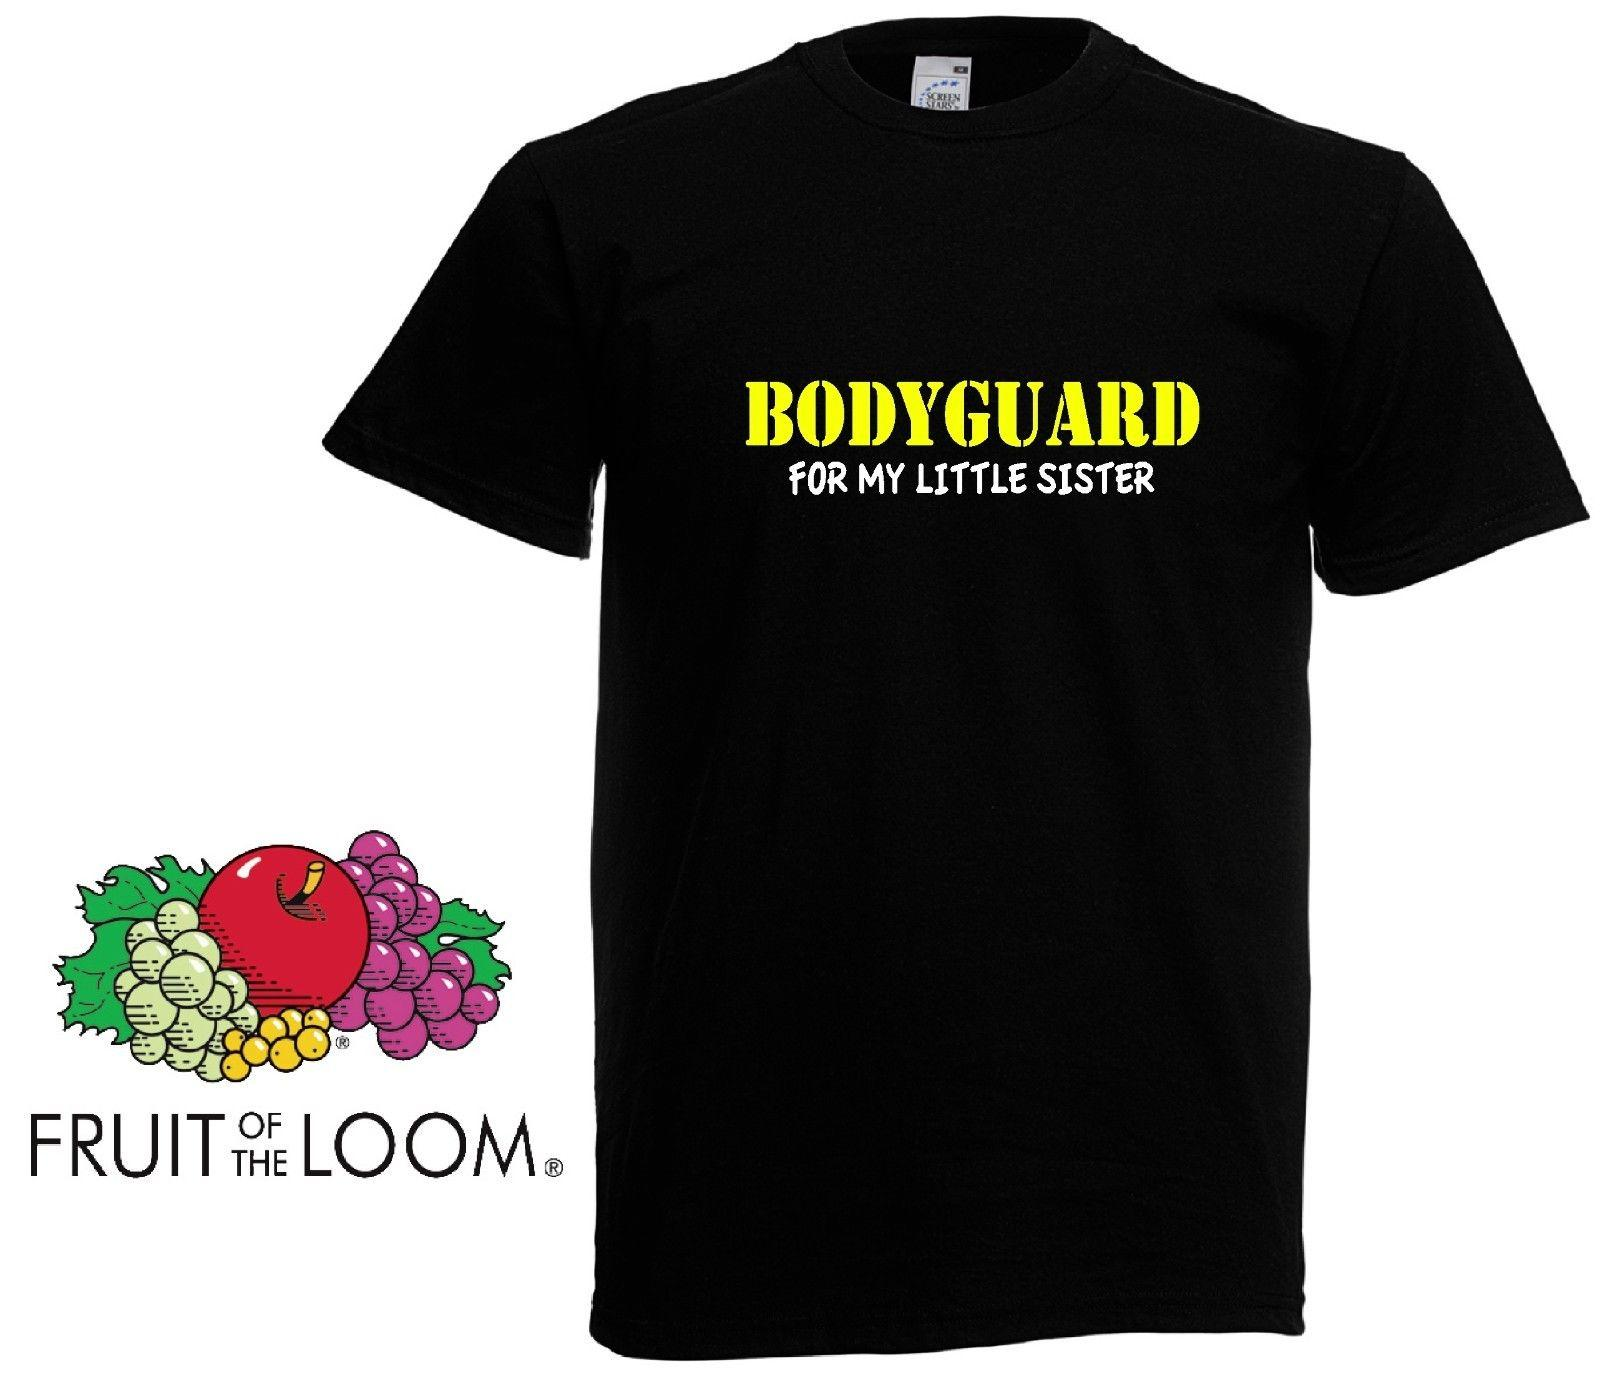 db9975ccb Bodyguard For My SISTER Big Brother Gift Boys Kids Funny T Shirt Top New  Funny Unisex Casual Tee Gift Buy T Shirts Online T Shirt From Tshirtsinc,  ...